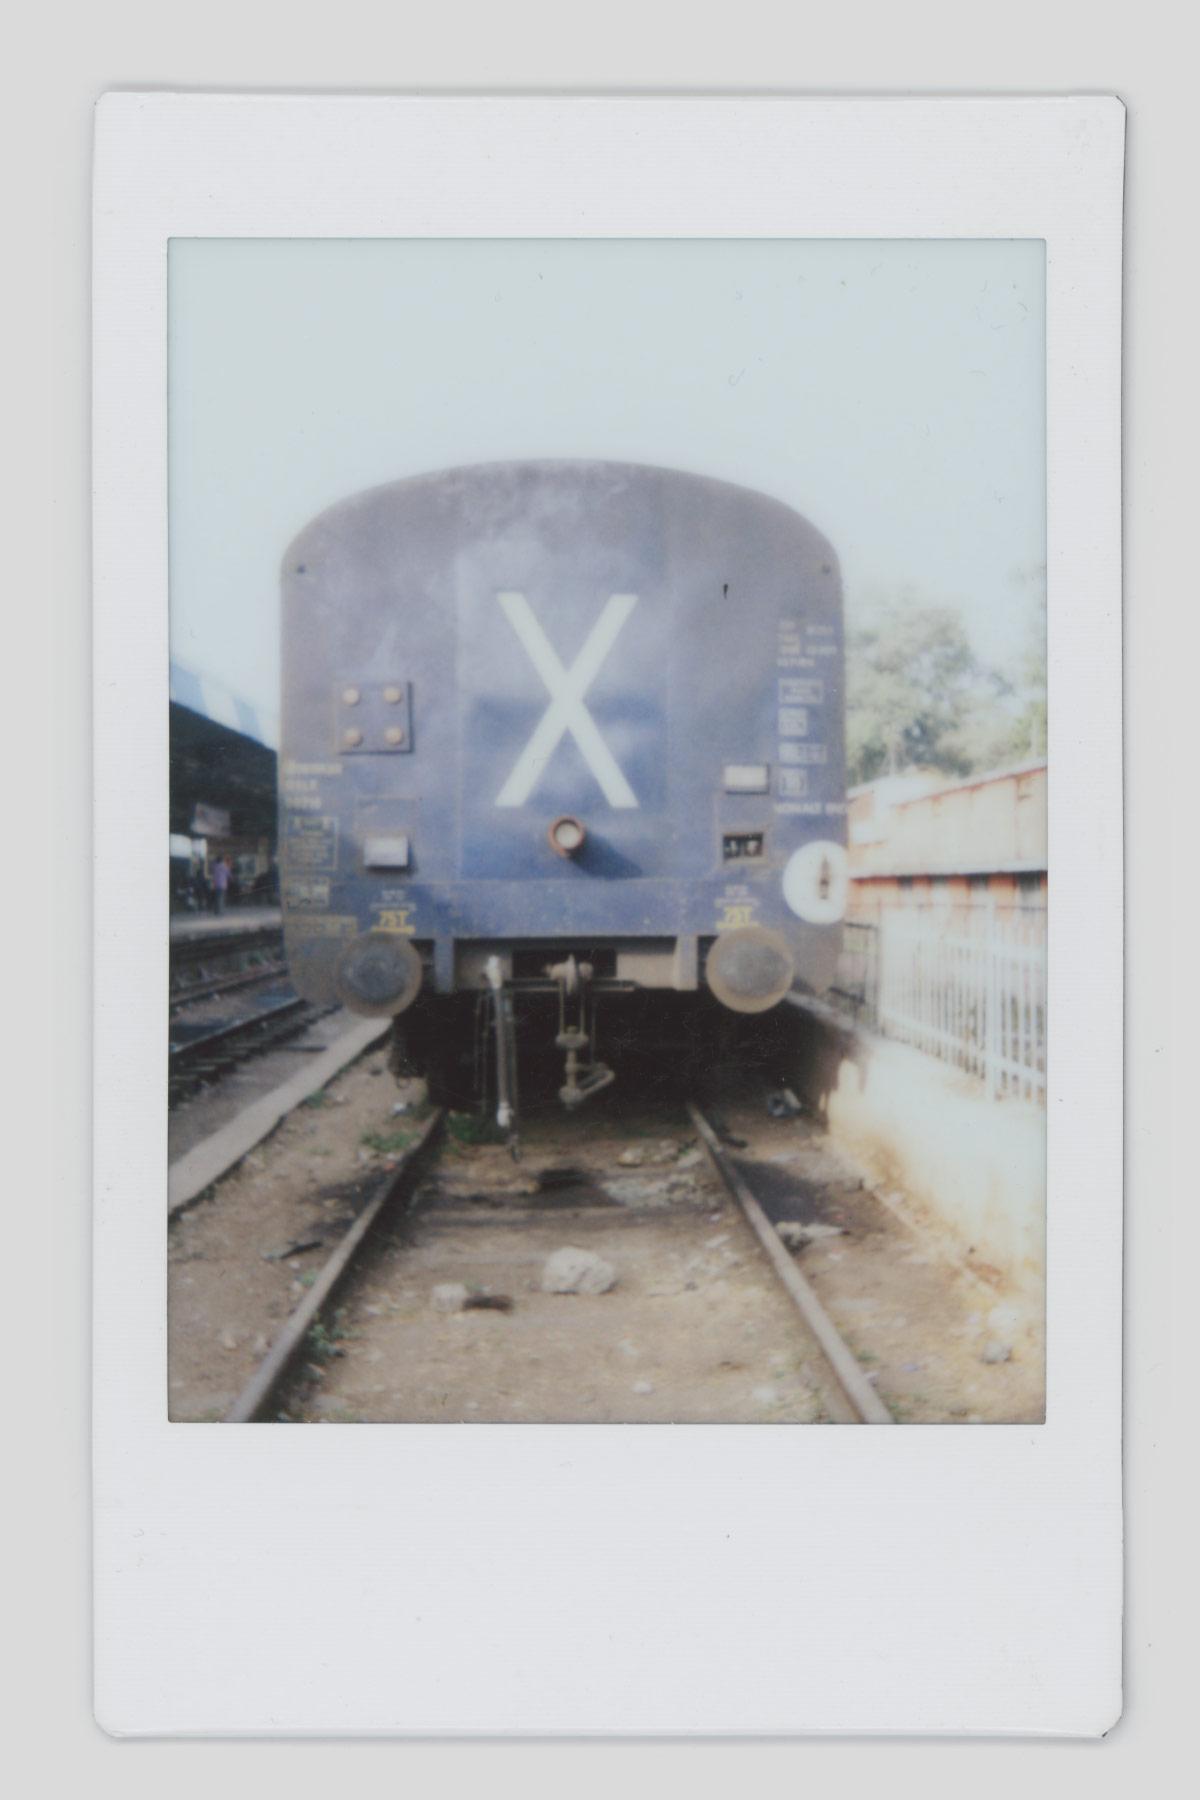 giulio_favotto_india_details_polaroid_instax_15